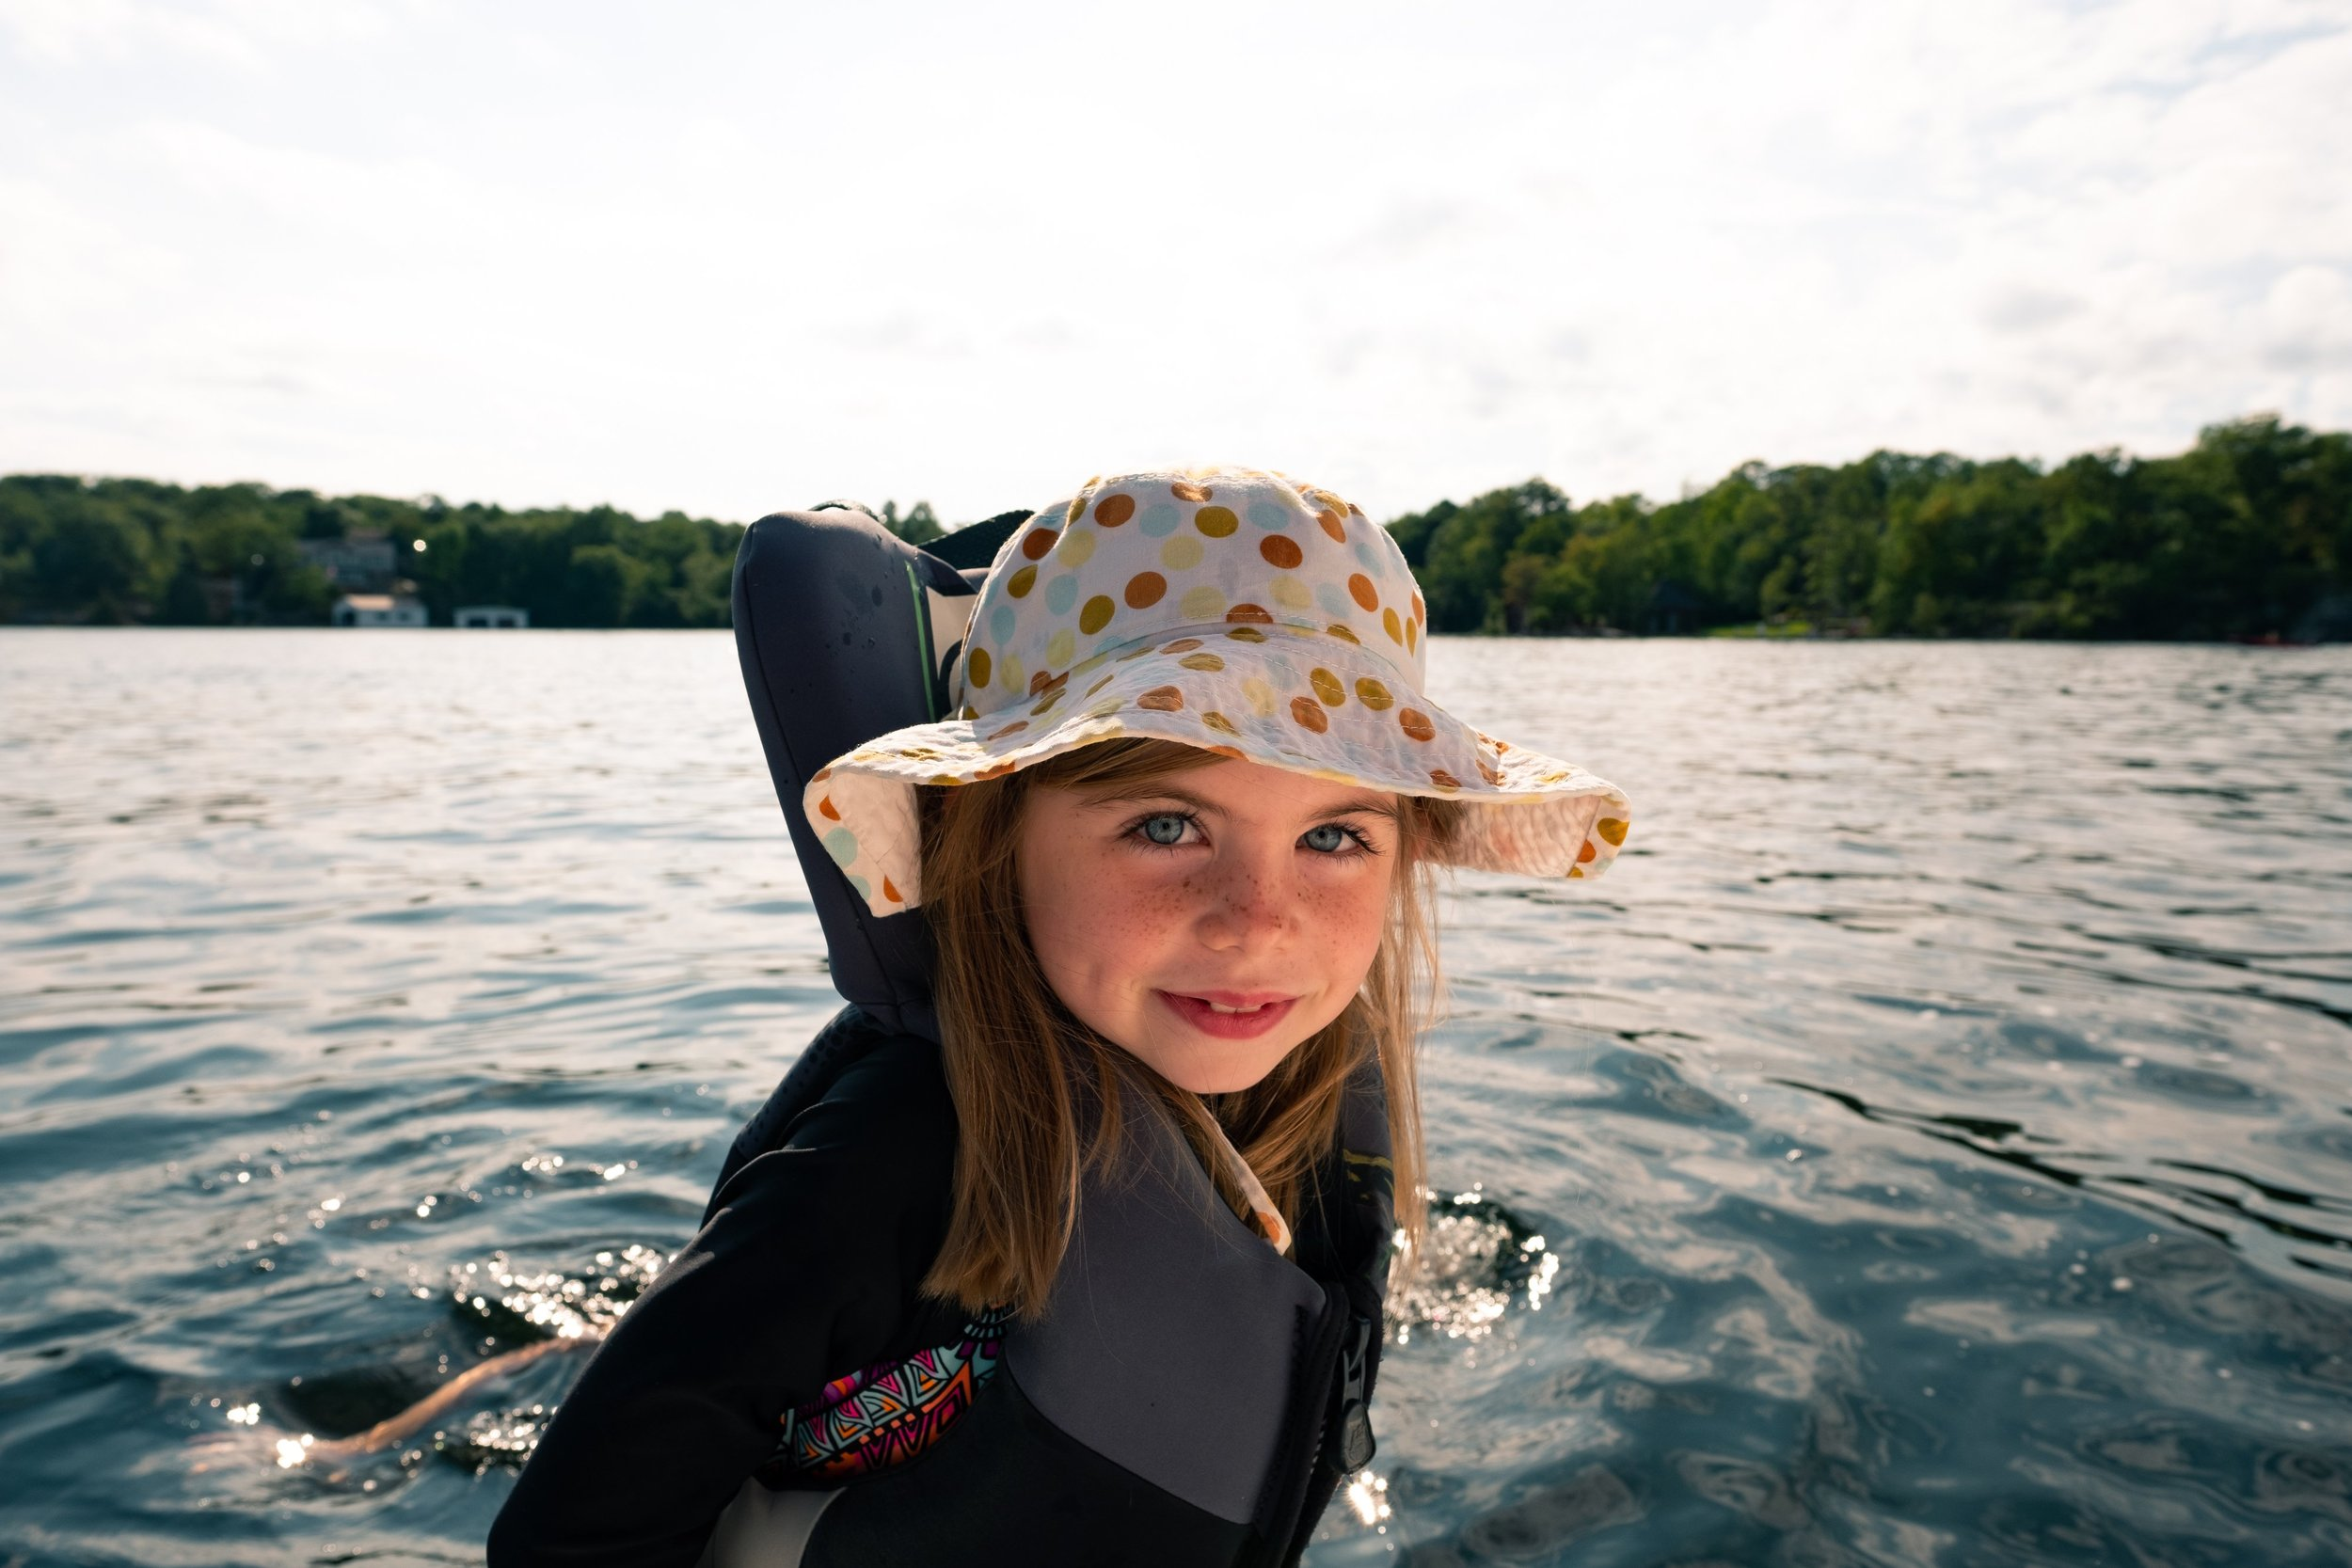 child-in-life-jacket-on-boat_4460x4460.jpg